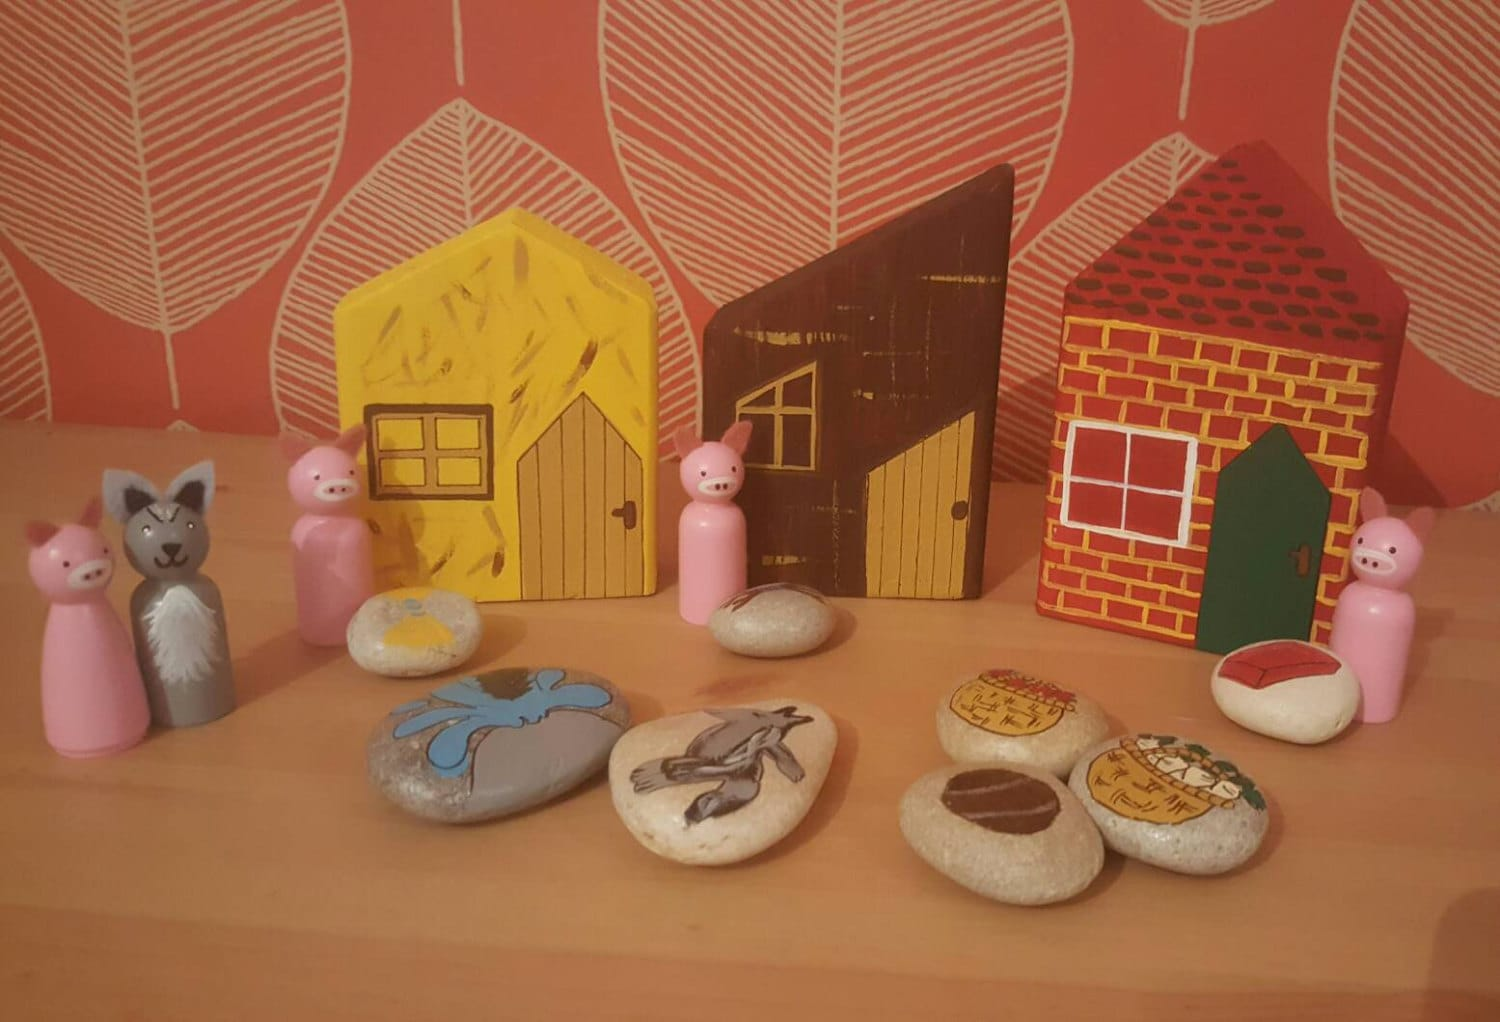 The Three Little Pigs Story bundle peg dolls story stone and wooden buildings